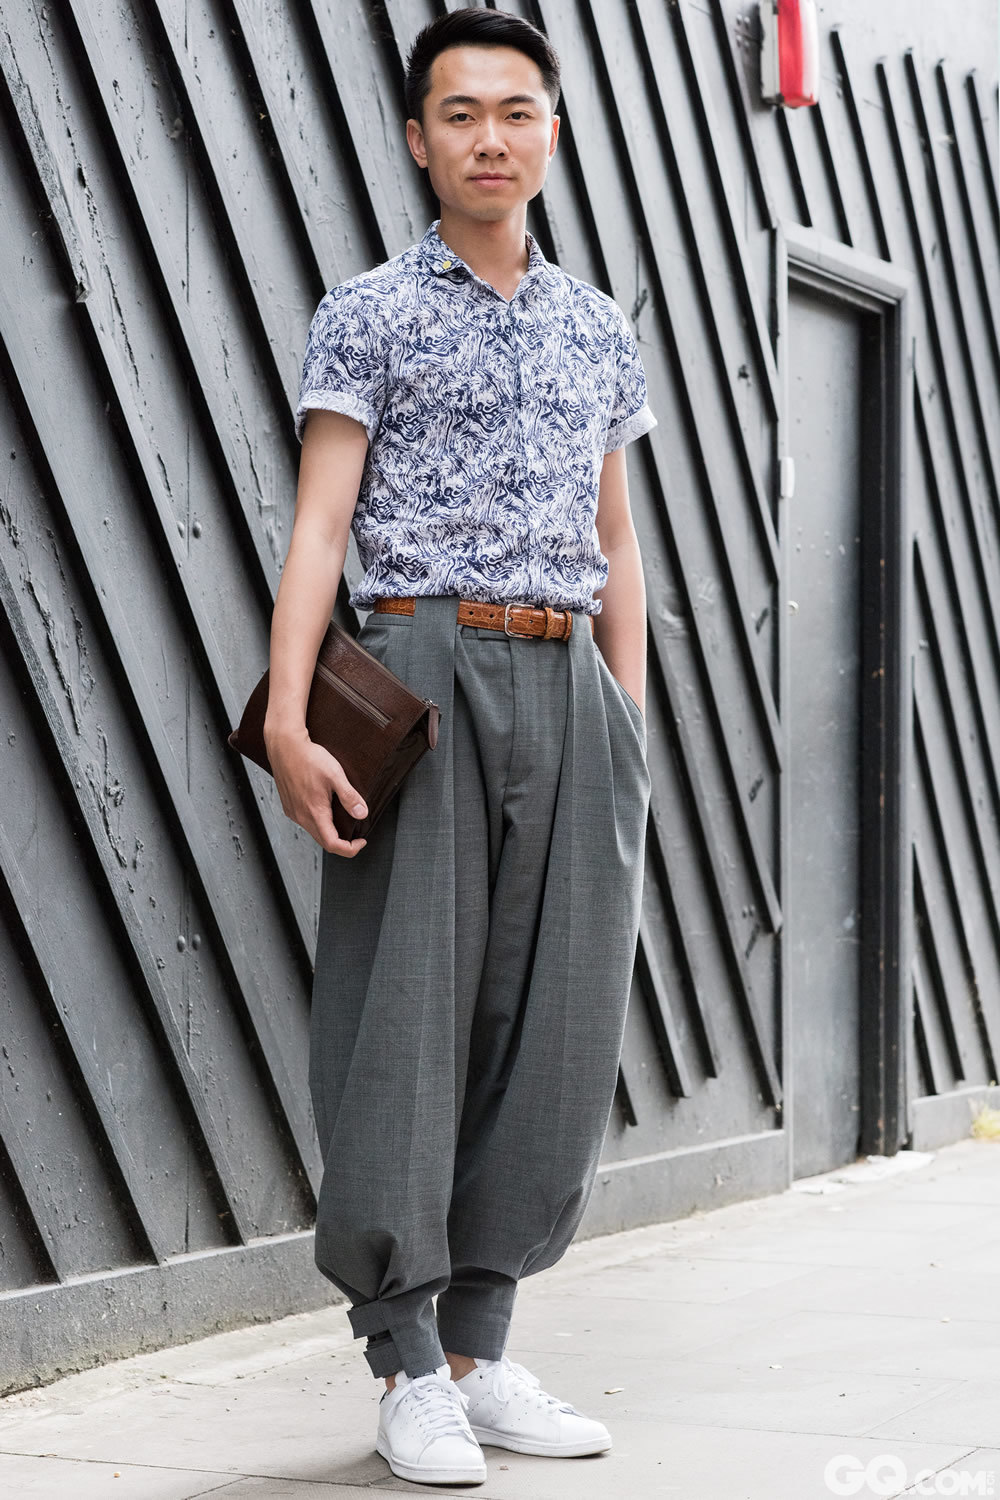 Kevin Shirt: Top Man Trousers: Q by McQueen  Shoes: Adidas by Sam Smith Clutch: Dries Van Noten  Inspiration: I just got the trousers and I wanted them to be the showpiece. I kind of tried to wear something easy that got well together with it.  (刚刚买了裤子,想让这件单品成为重点和亮点,我会想尝试让配搭简单一些。)